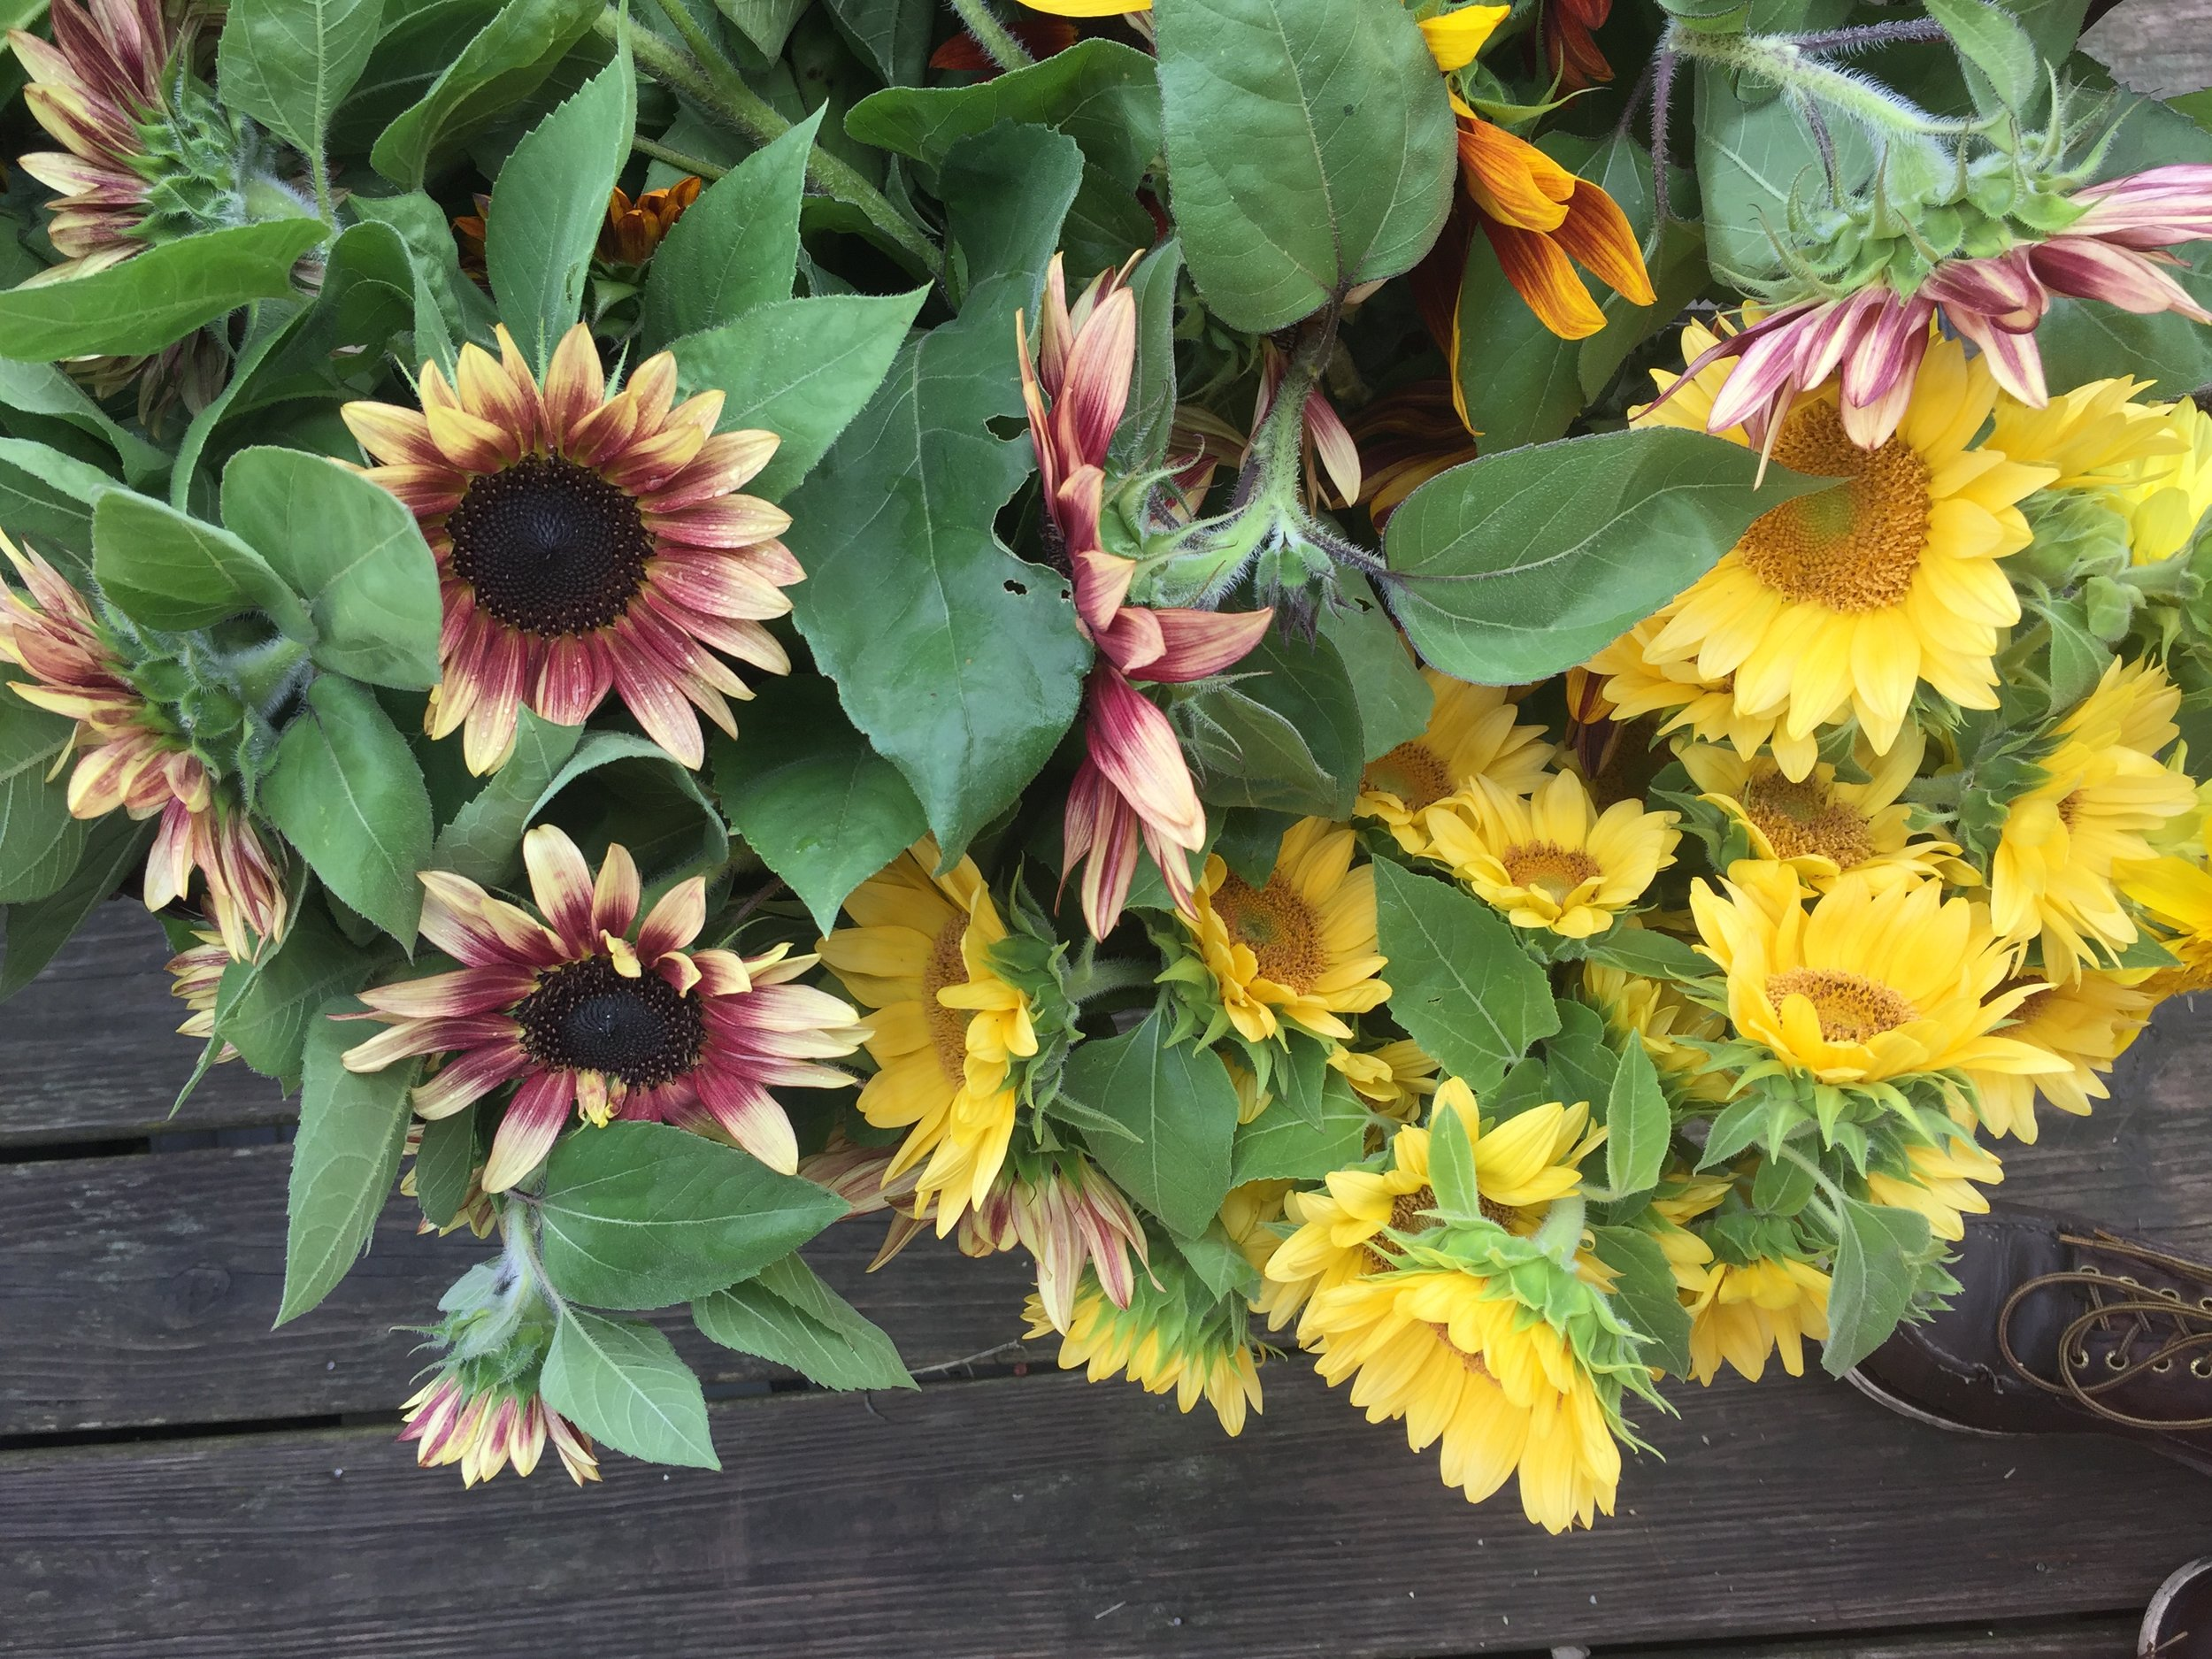 Ruby Eclipse & Peach Passion.... special sunflowers.